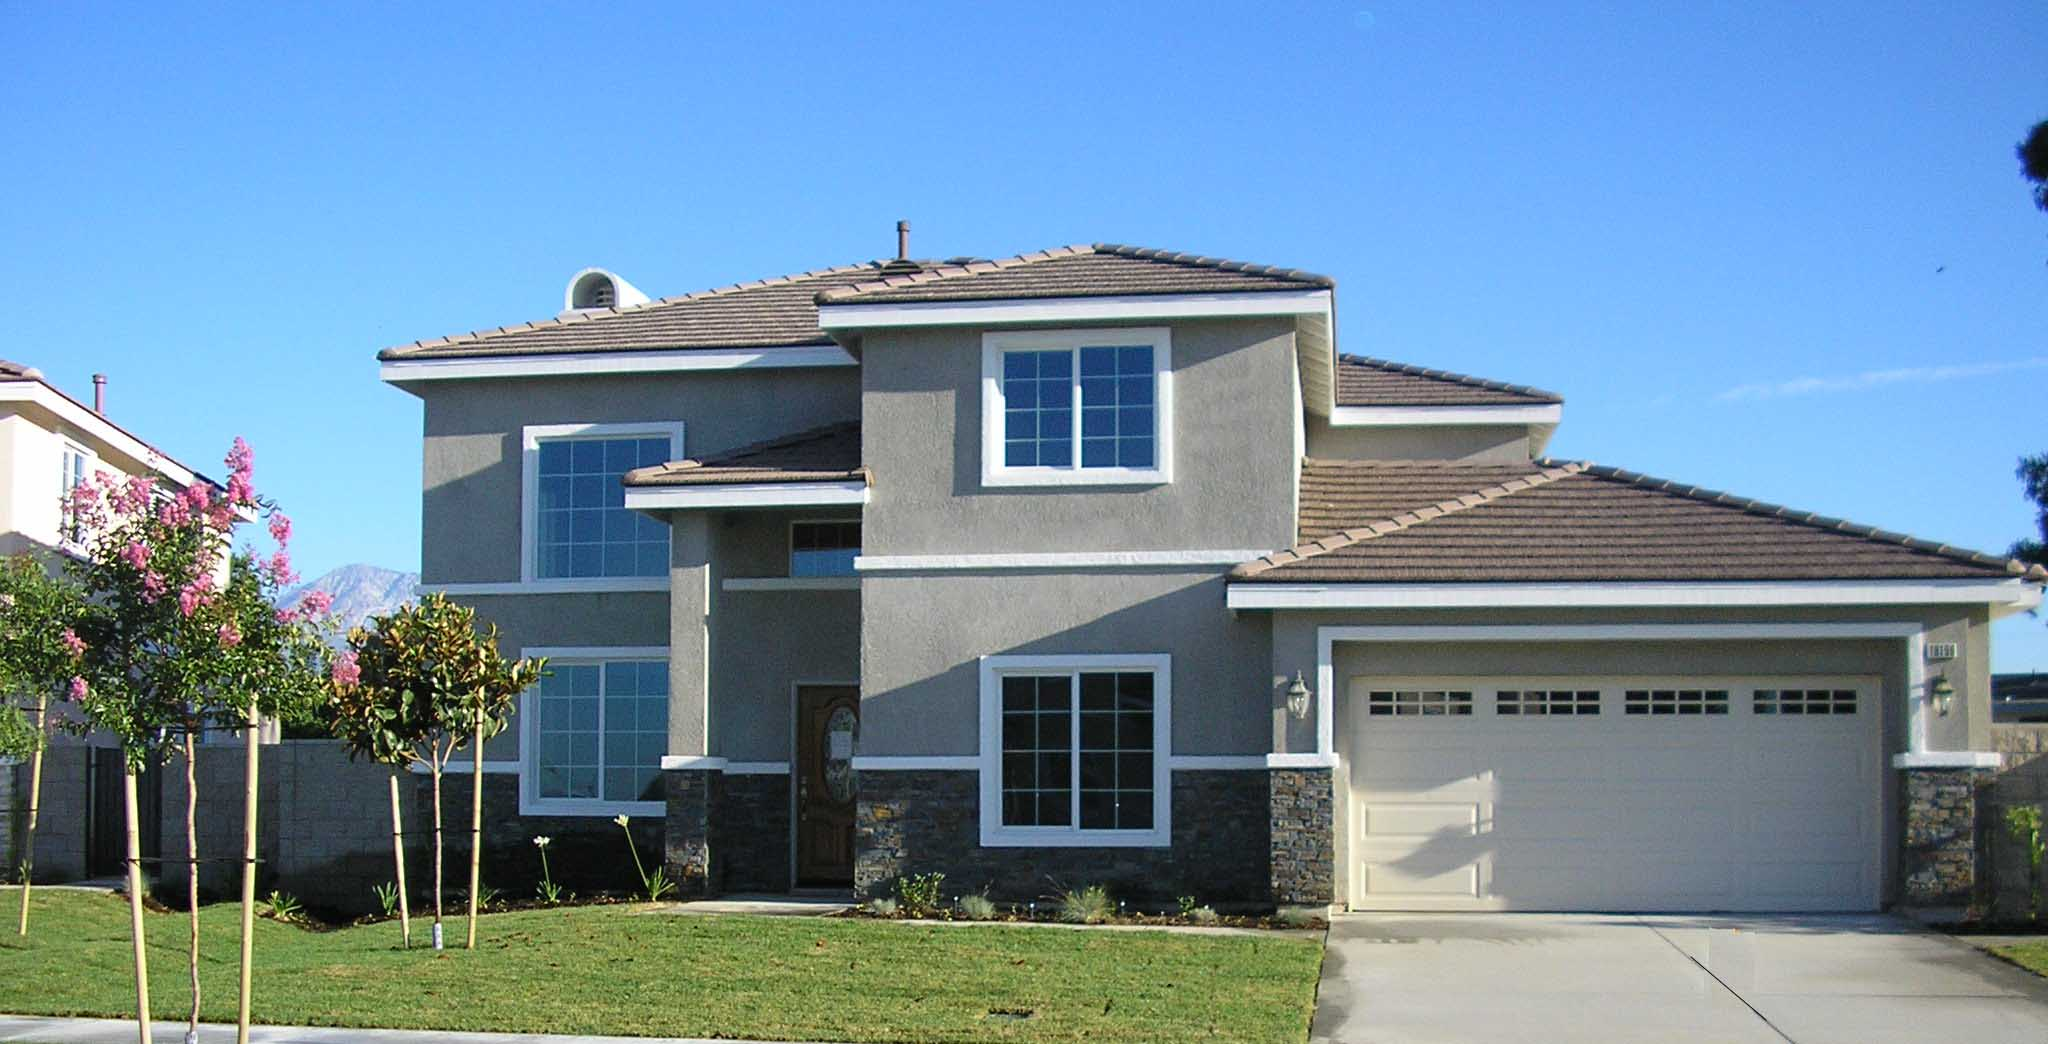 Escondido single family homes cityscape houses for sale for 2 story house for sale